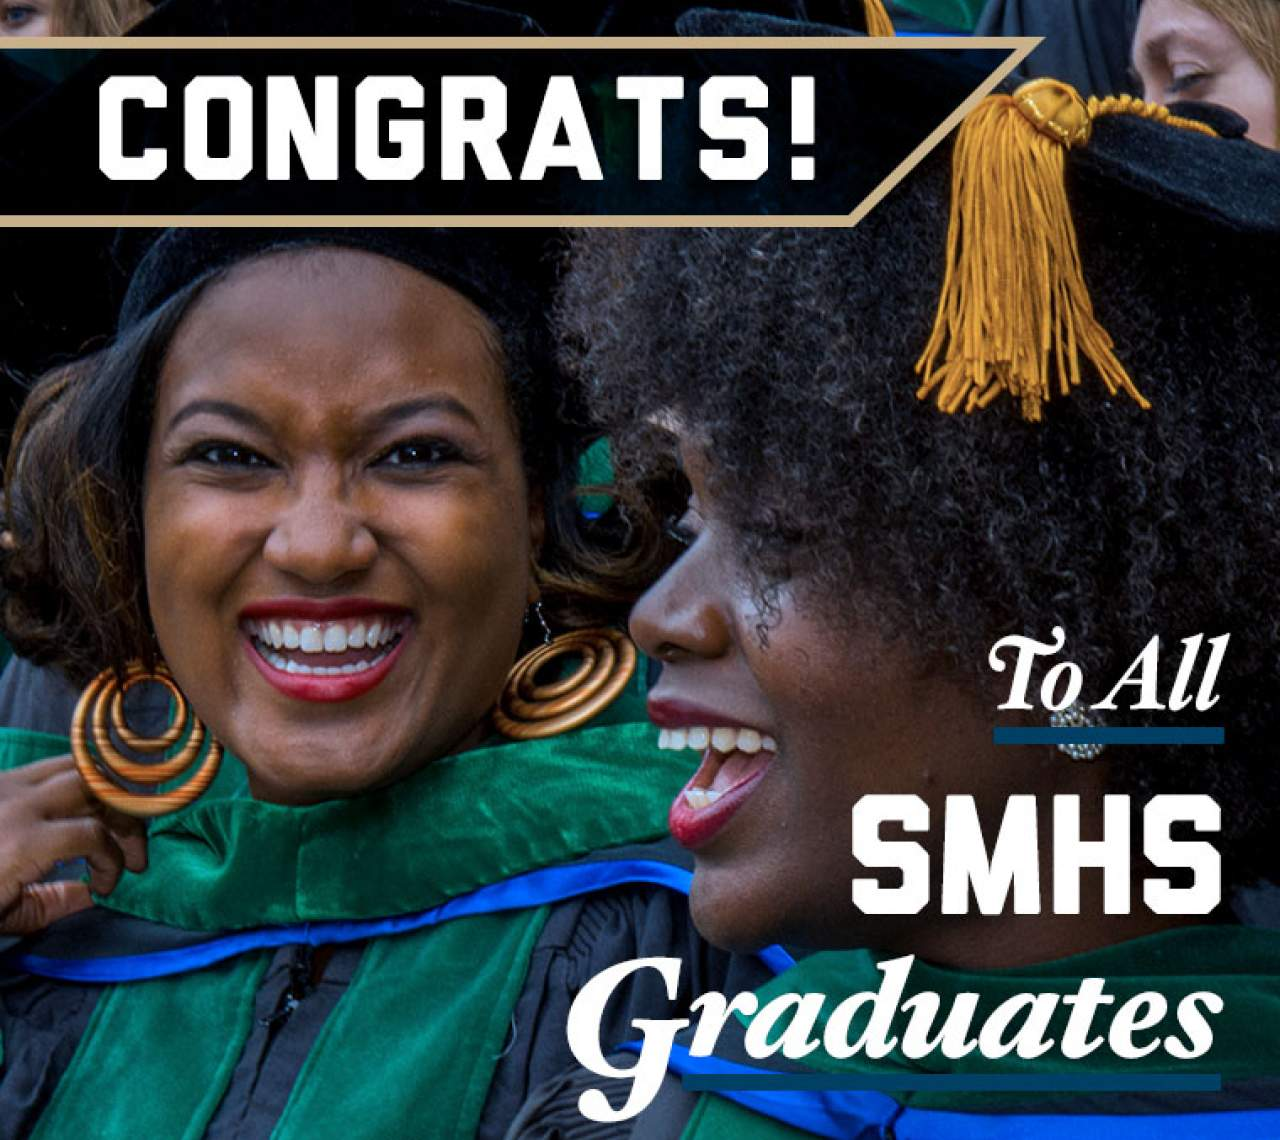 Congrats to all SMHS graduates